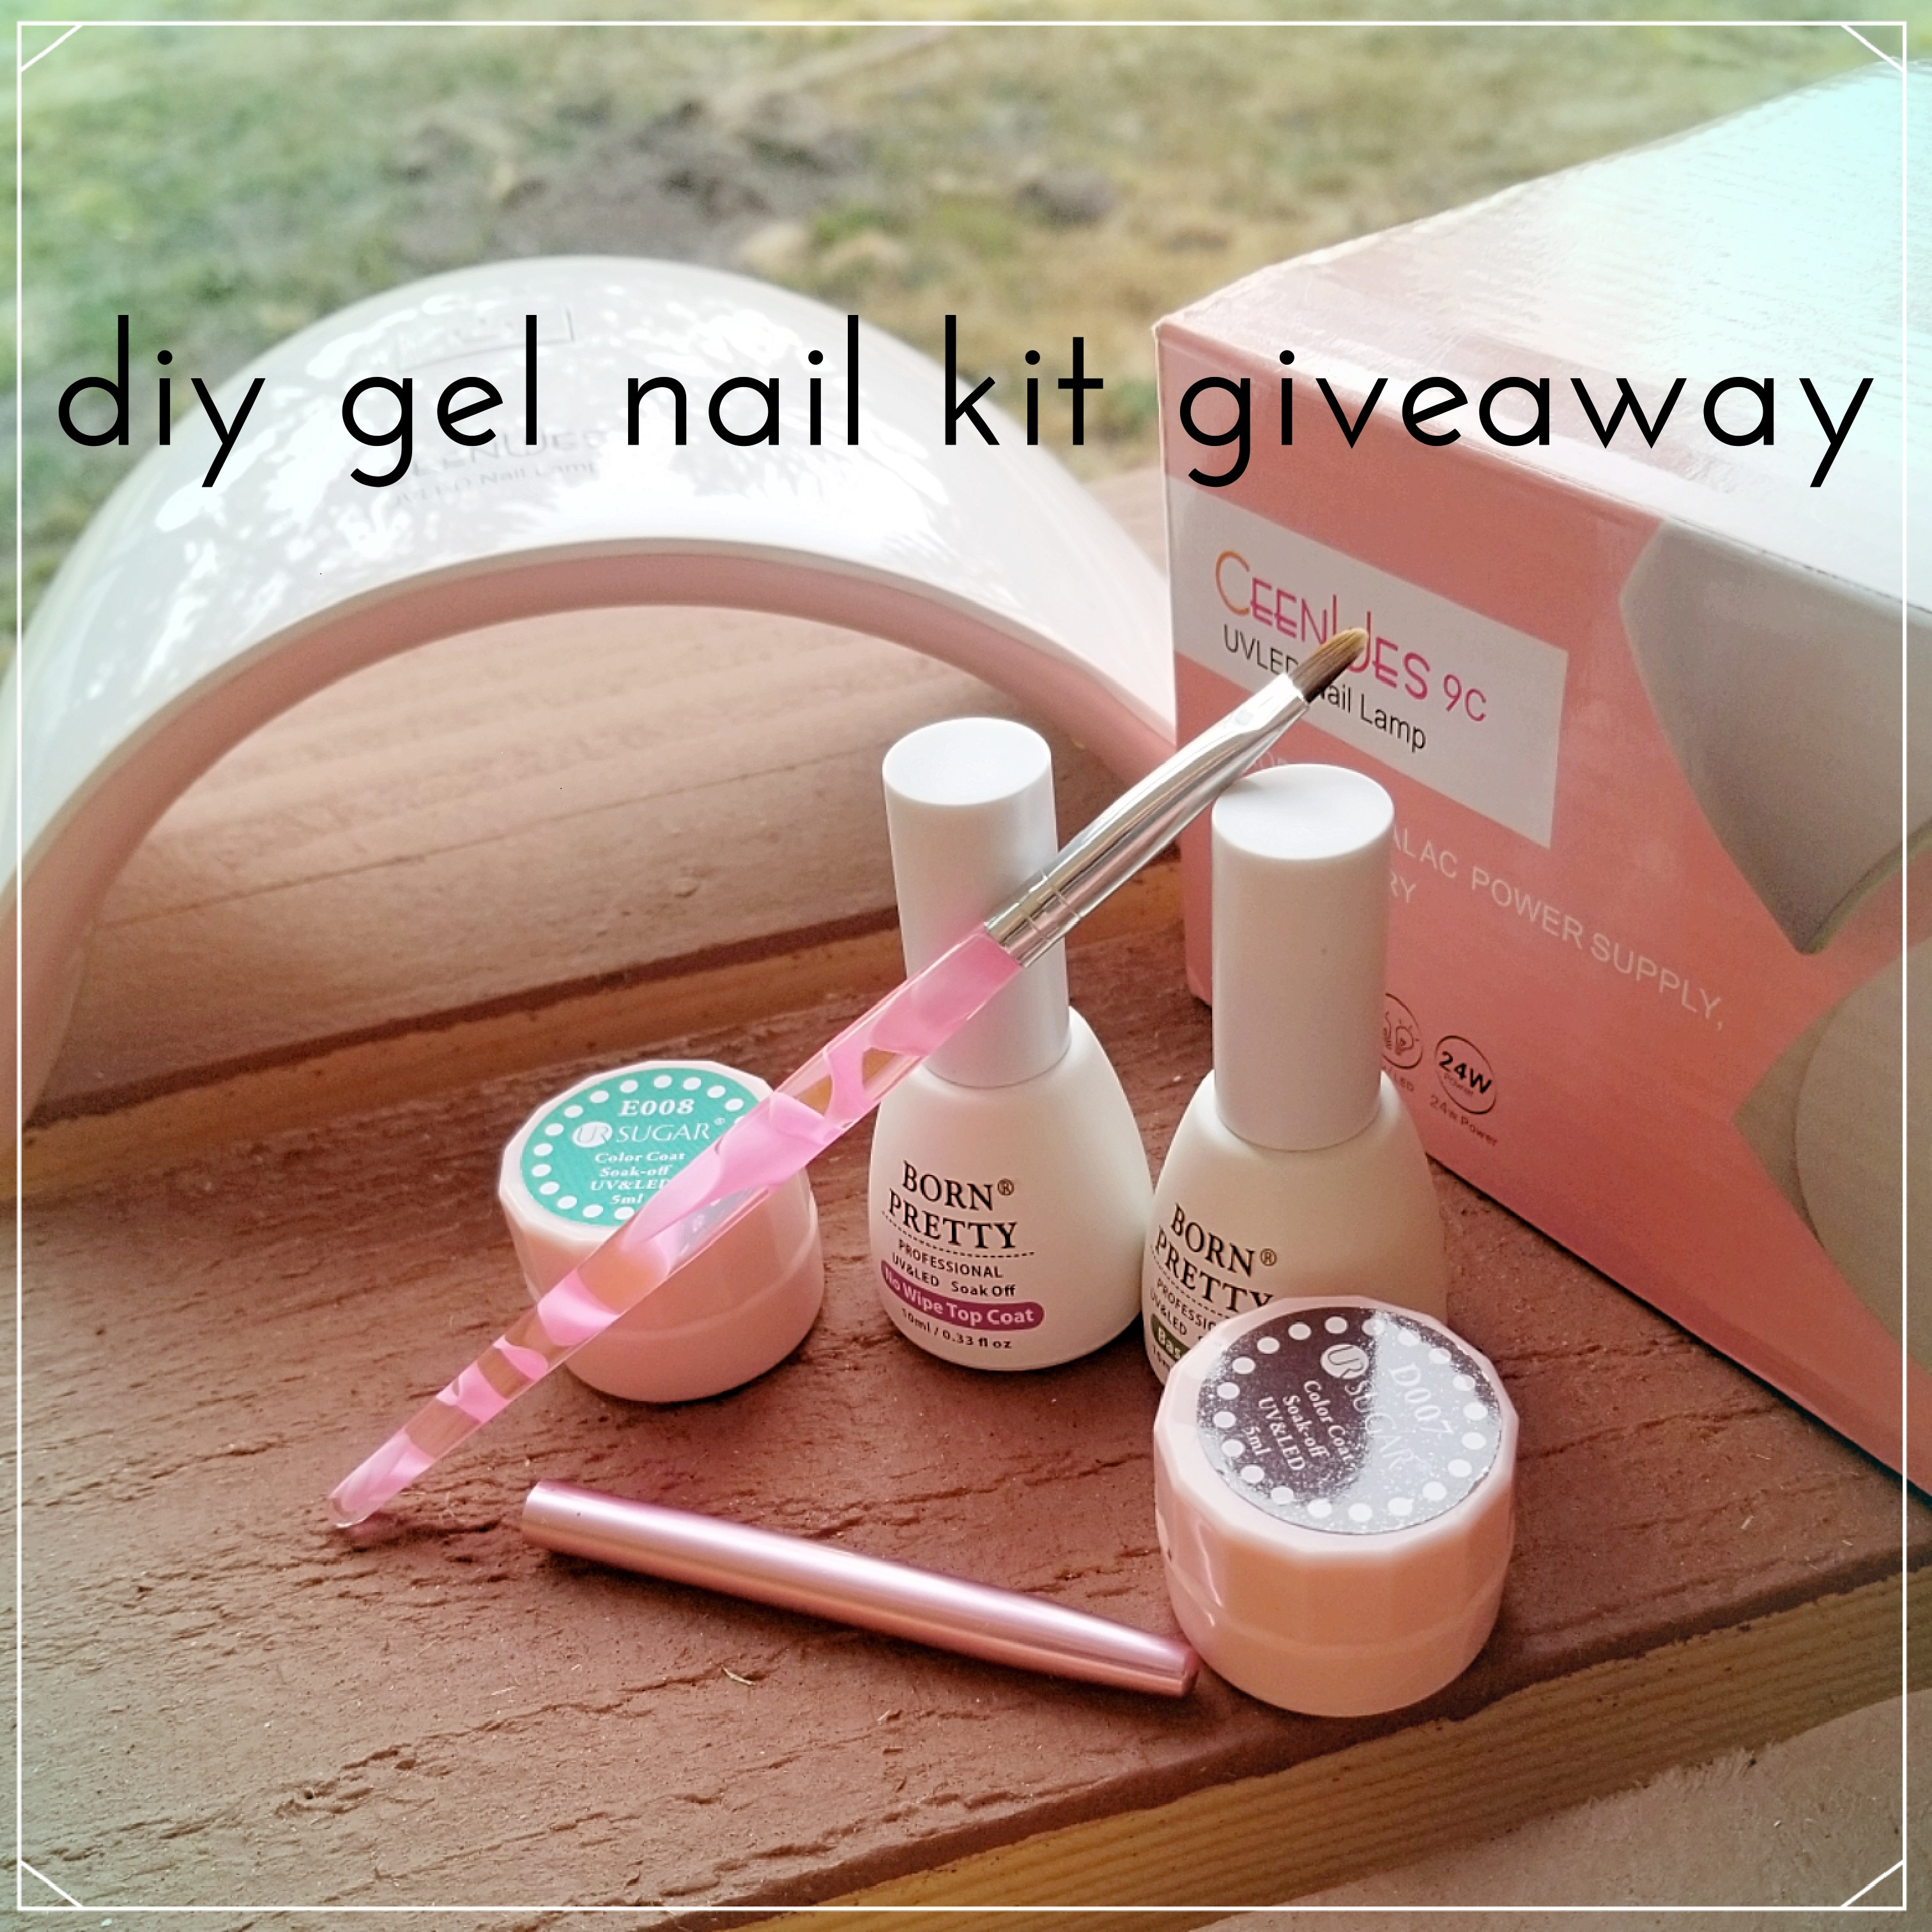 DIY gel nail kit giveaway